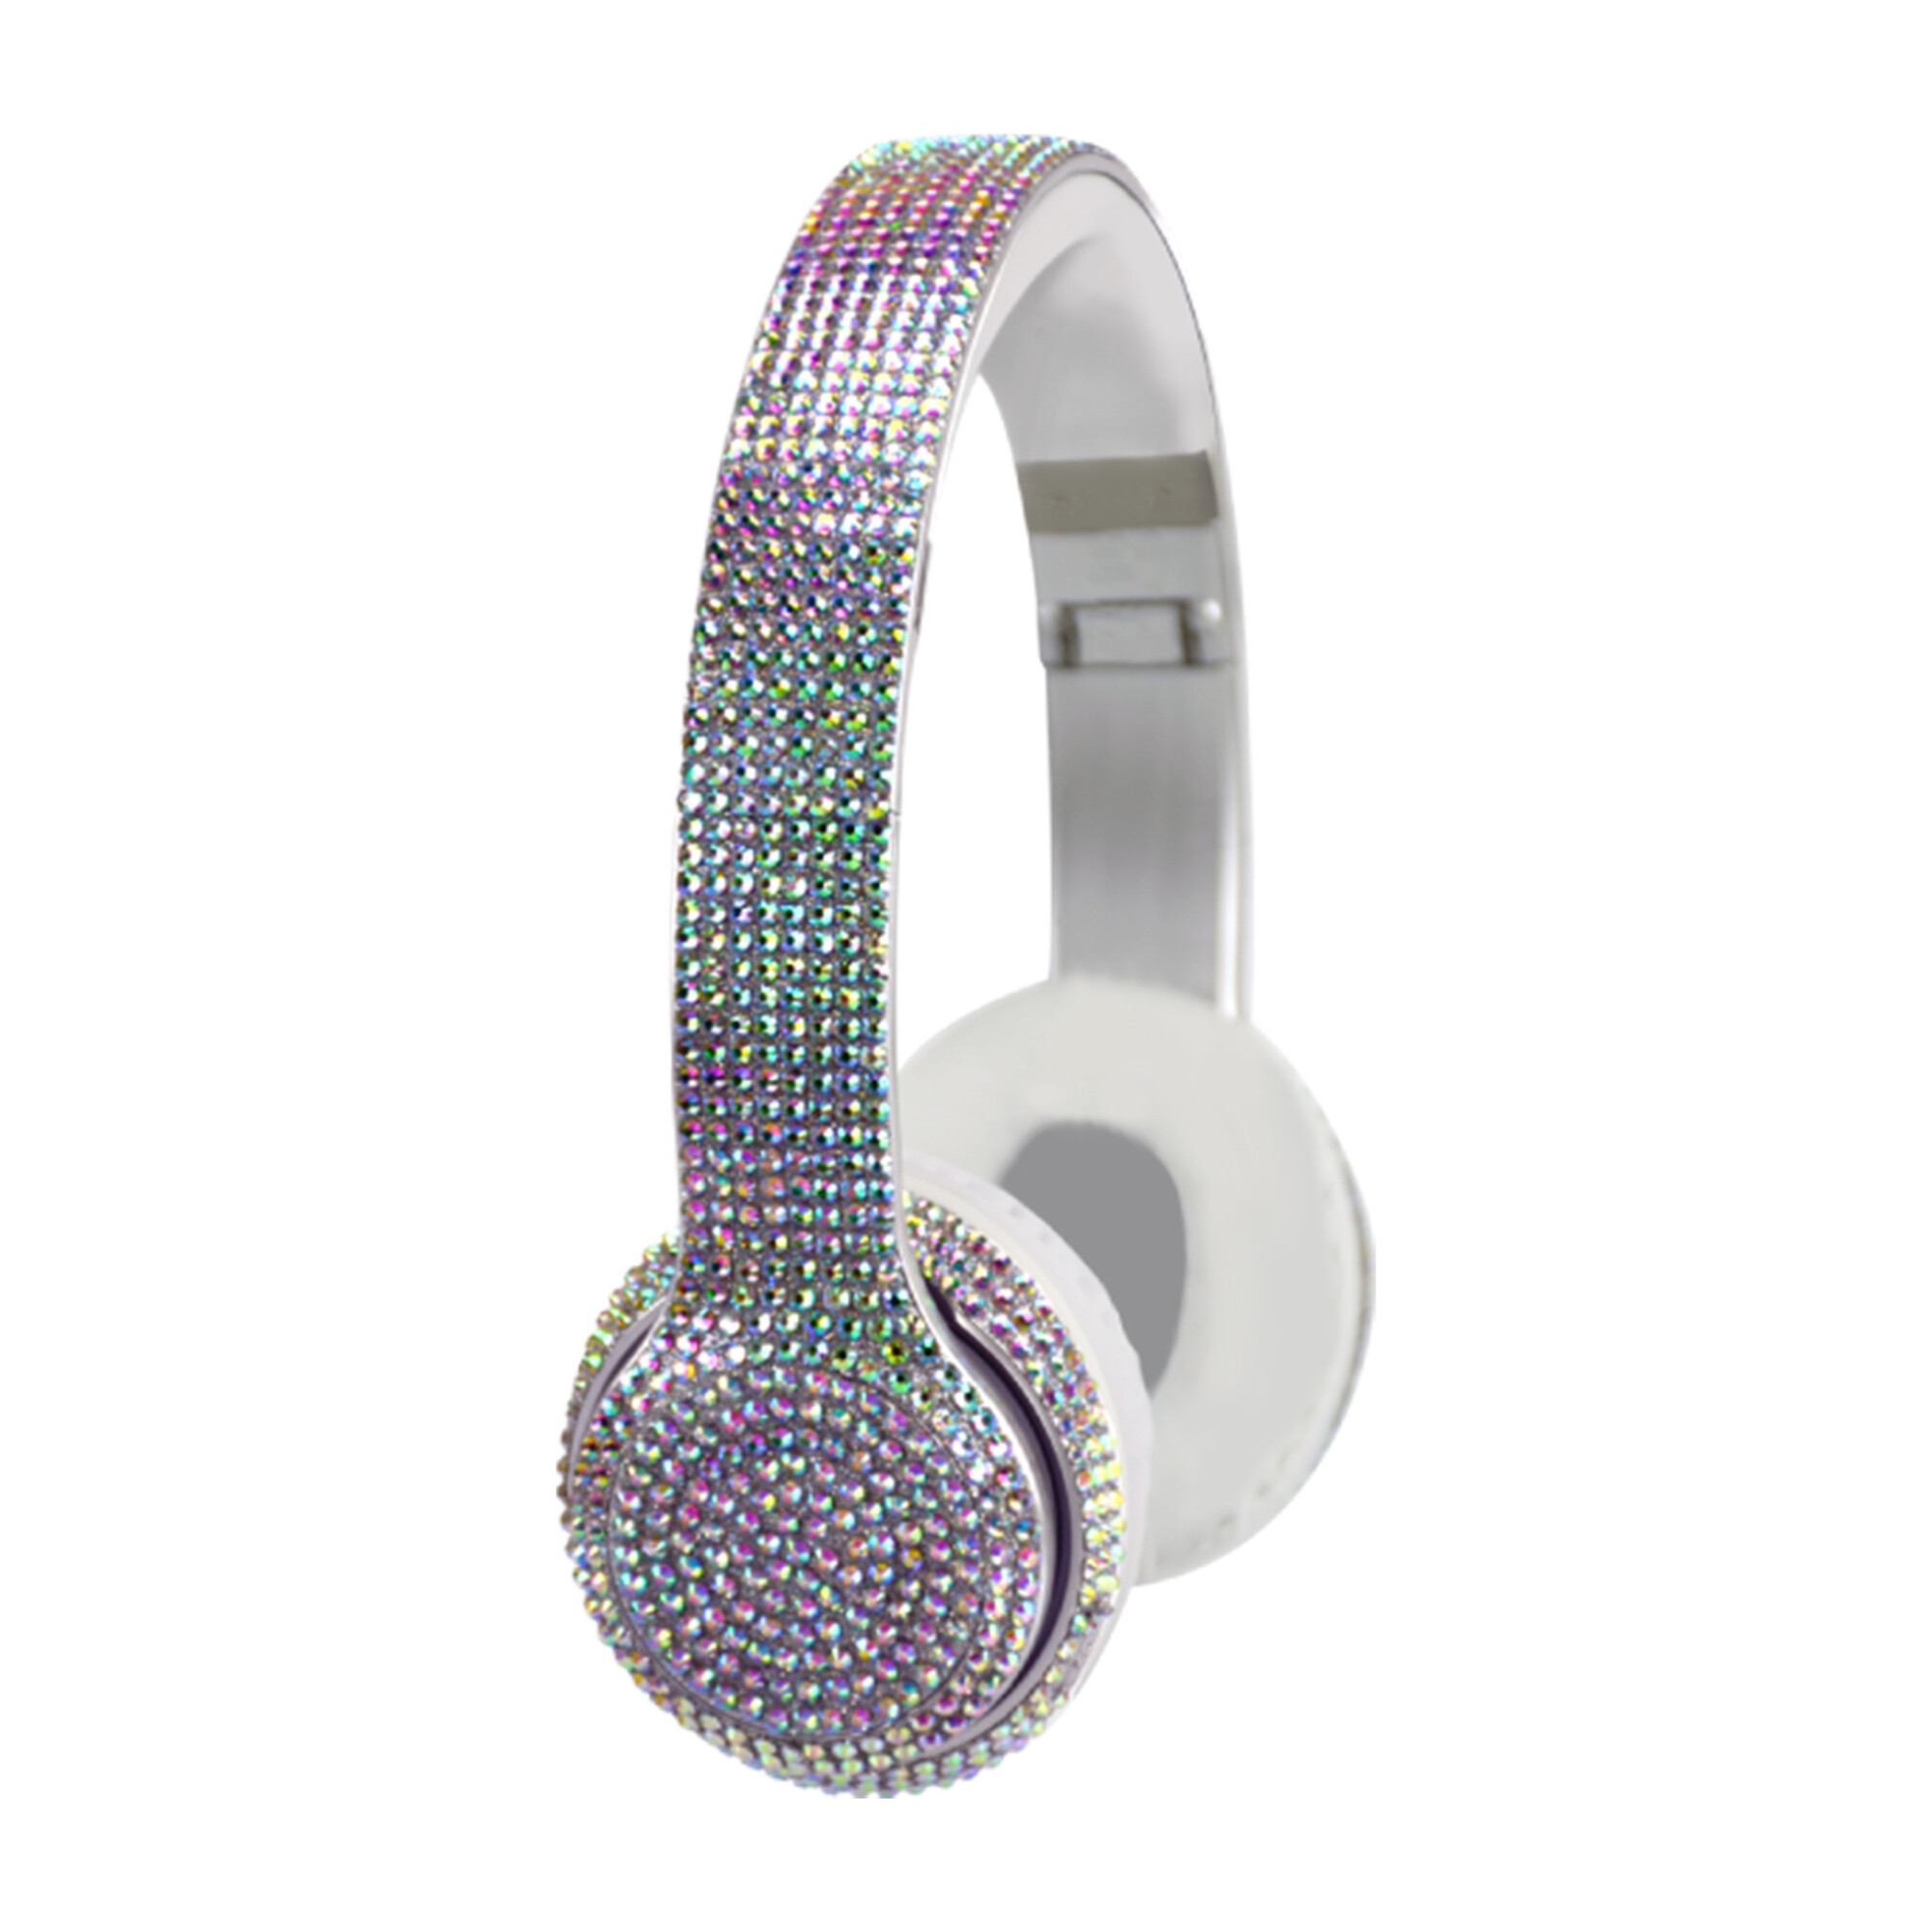 Iridescent Bling Headphones with LED Speakers